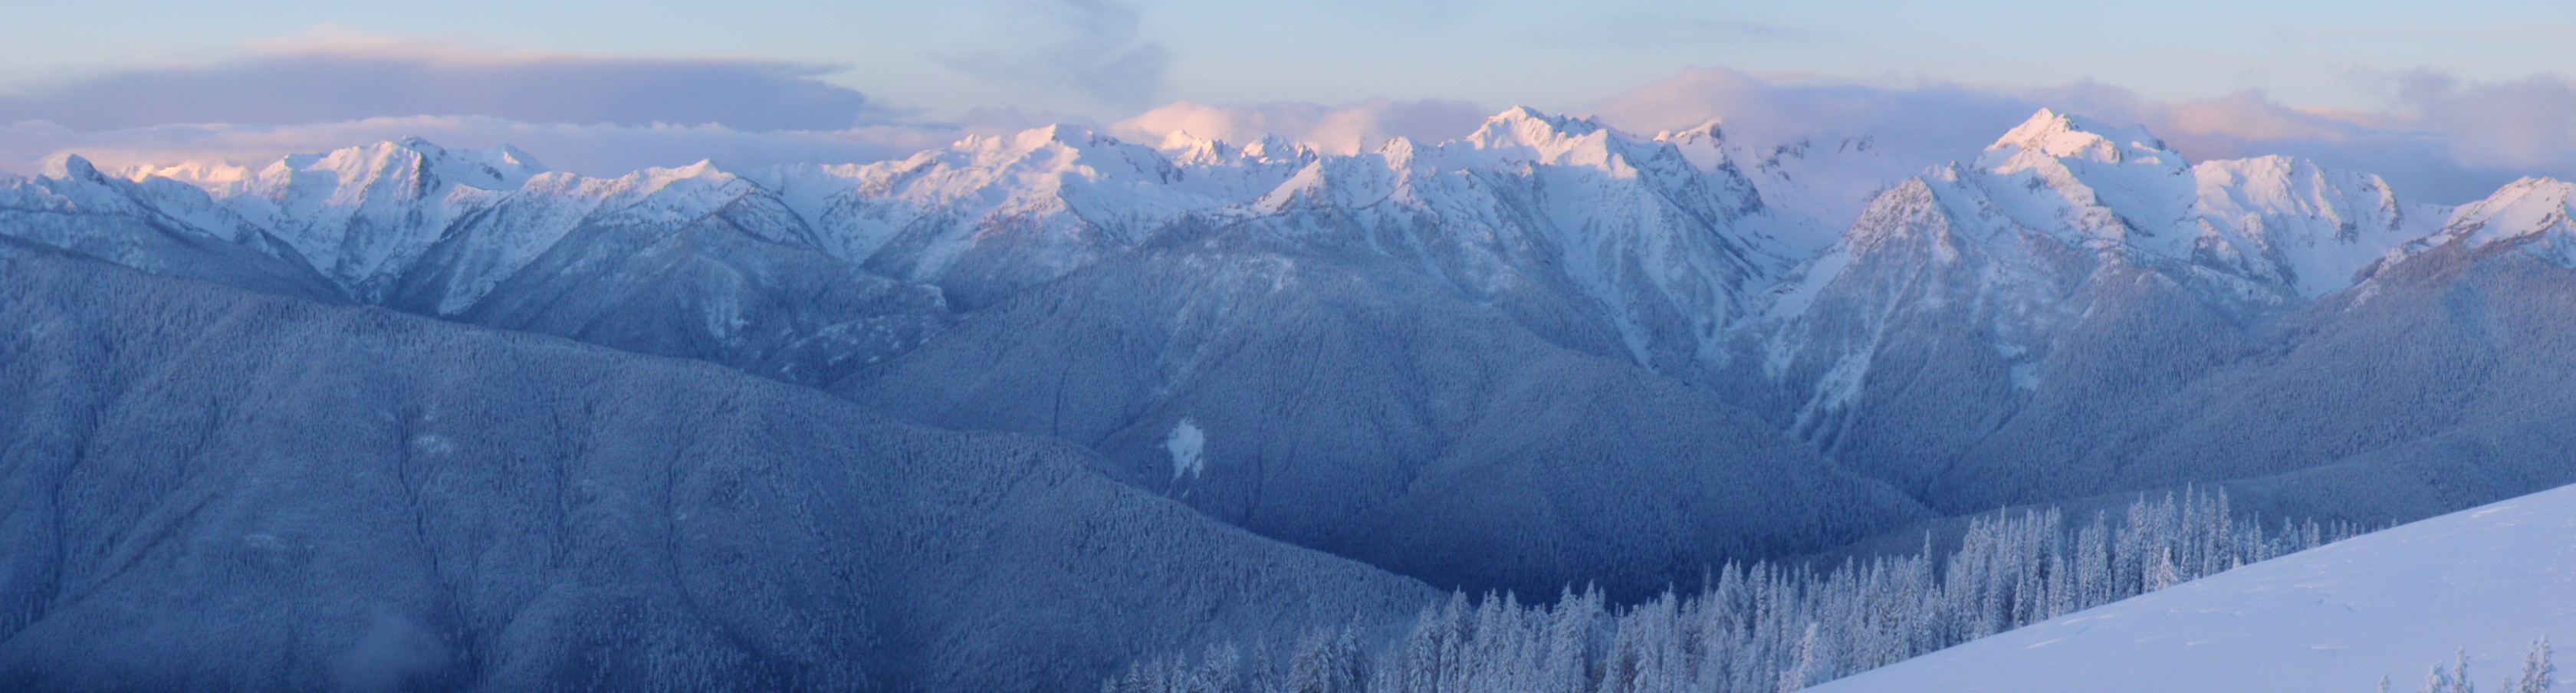 Snow Capped Mountain Panorama The Variety Of Weather Conditions In Olympic National Park